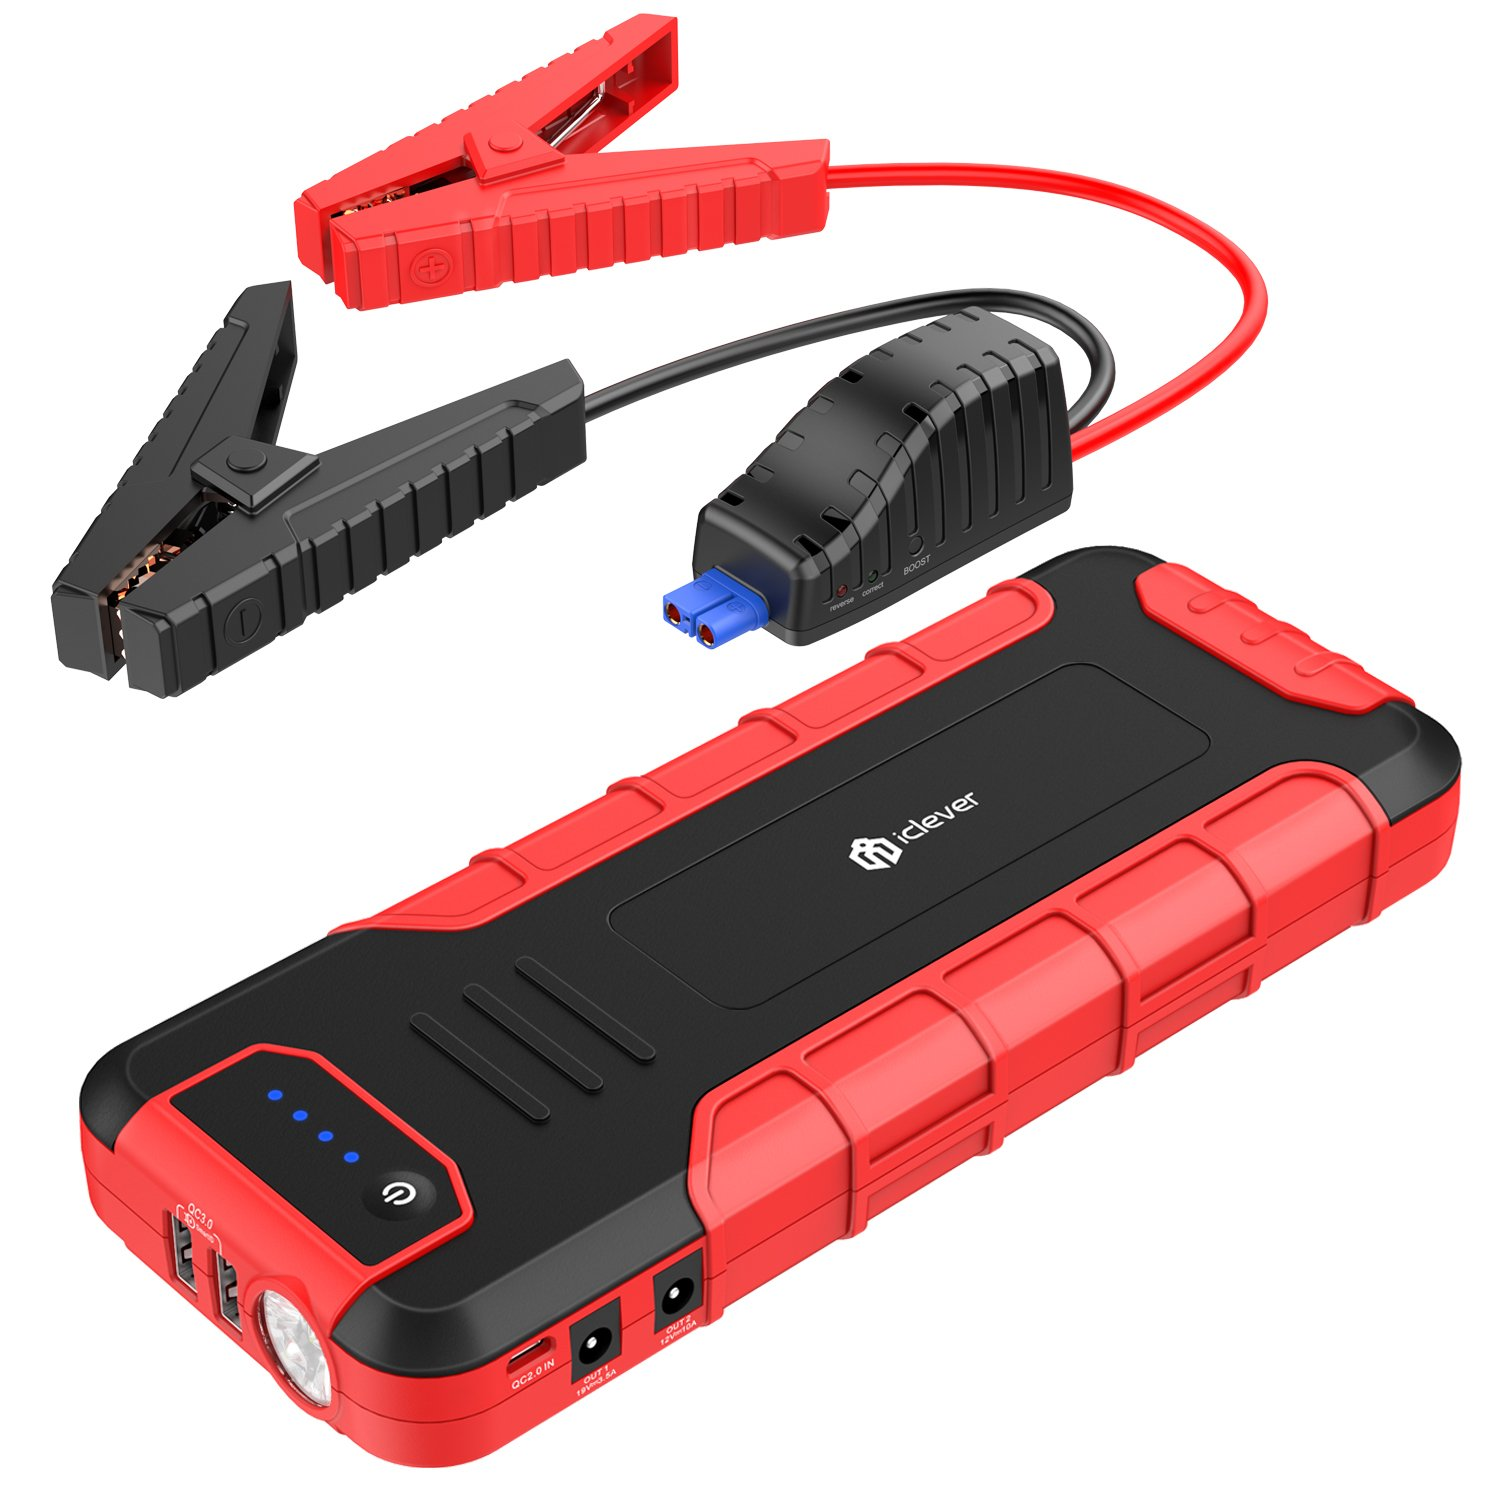 iClever 1300A Peak Portable Car Jump Starter (up to 8L Gas or 6.5L Disel Engine), Auto Battery Booster, Power Bank Car Battery Charger with Smart Clamps and Adapter